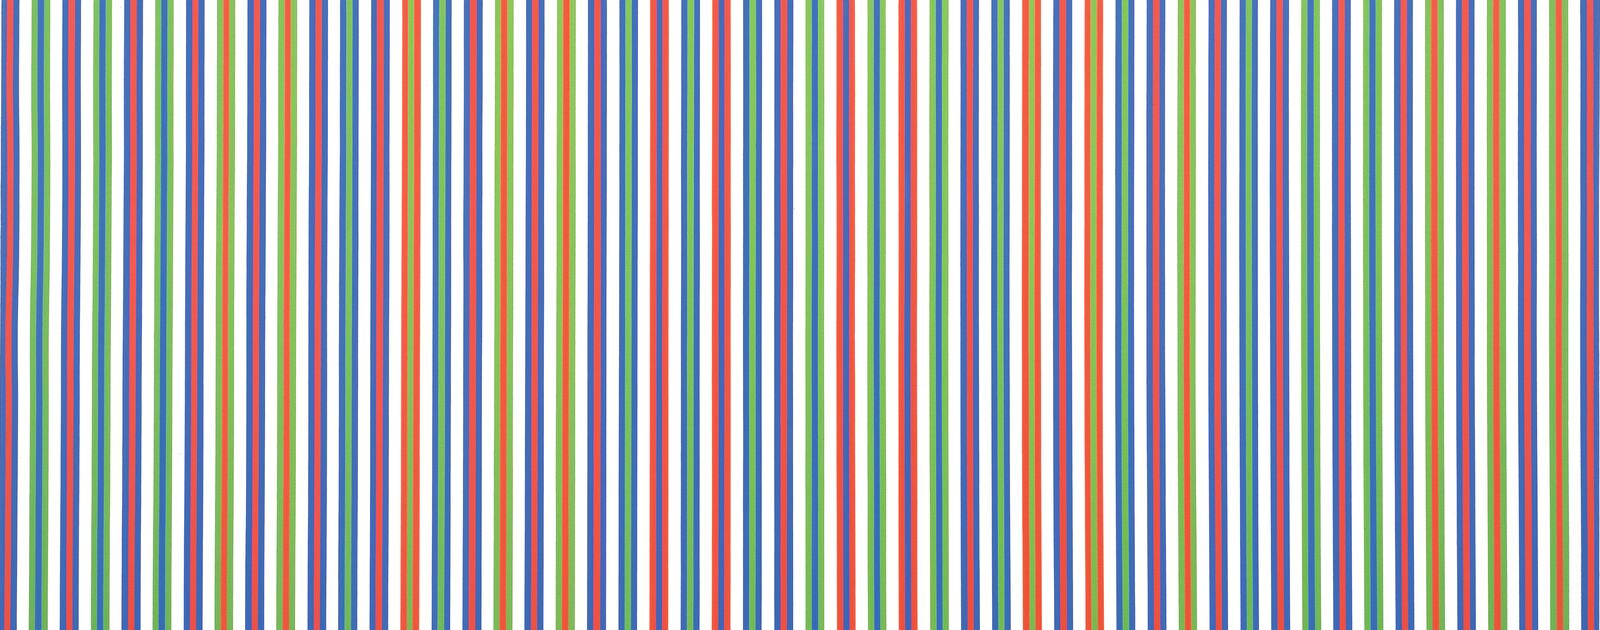 Paean (detail), 1973. Acrylic on canvas. 290.2 x 287.3 cm. Copyright Bridget Riley 2019. All rights reserved.